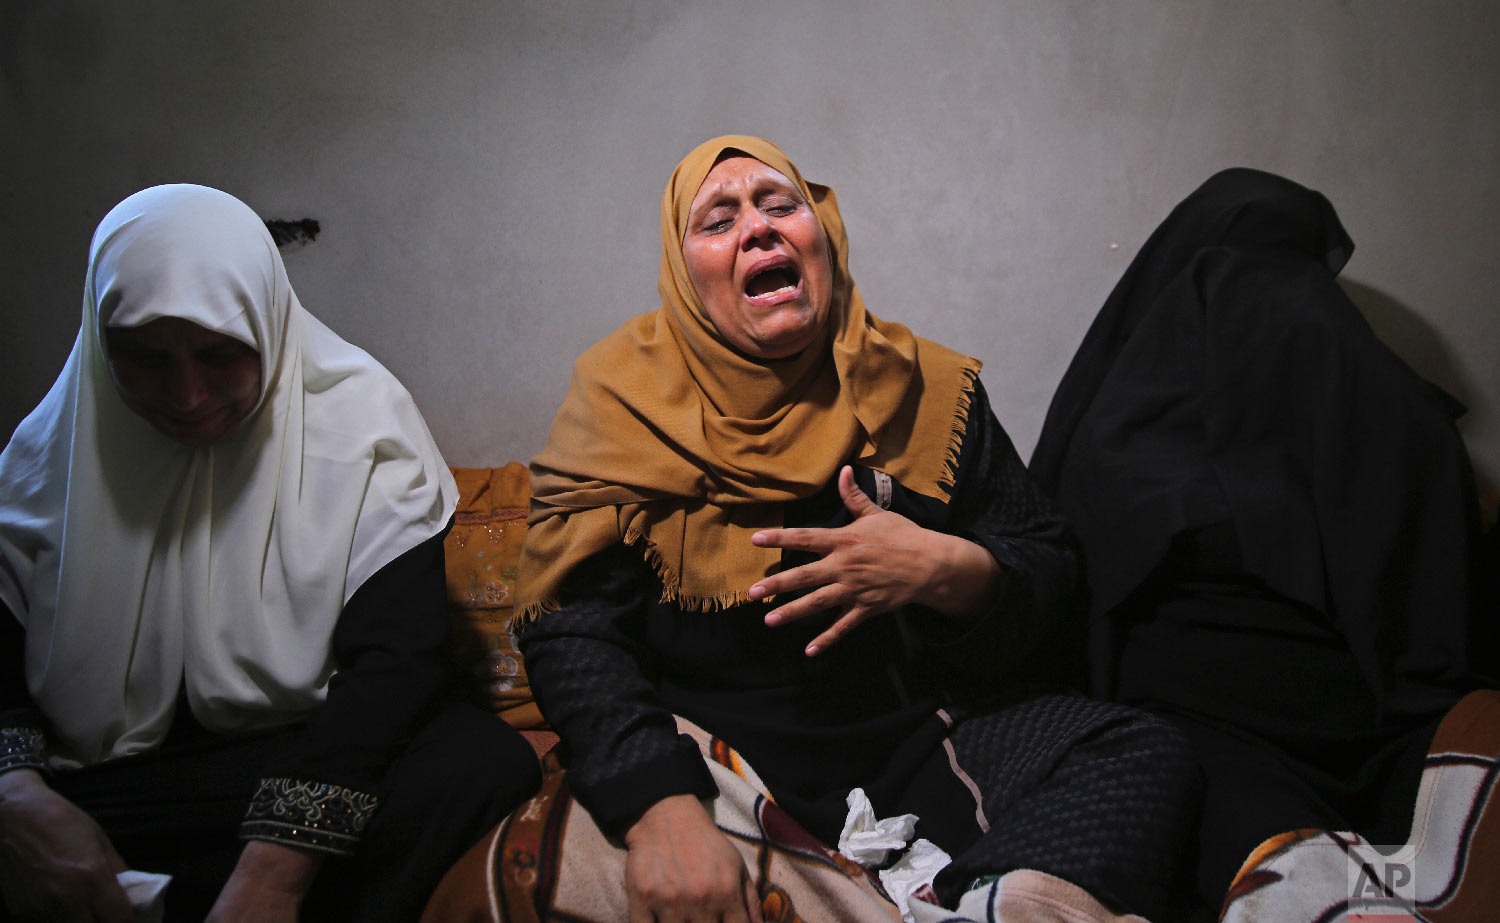 The mother of Ahamd Omar, 20, mourns while waiting with relatives for the body of her son at the family's house during his funeral in the Shati refugee camp, Sept. 19, 2018. (AP Photo/Adel Hana)